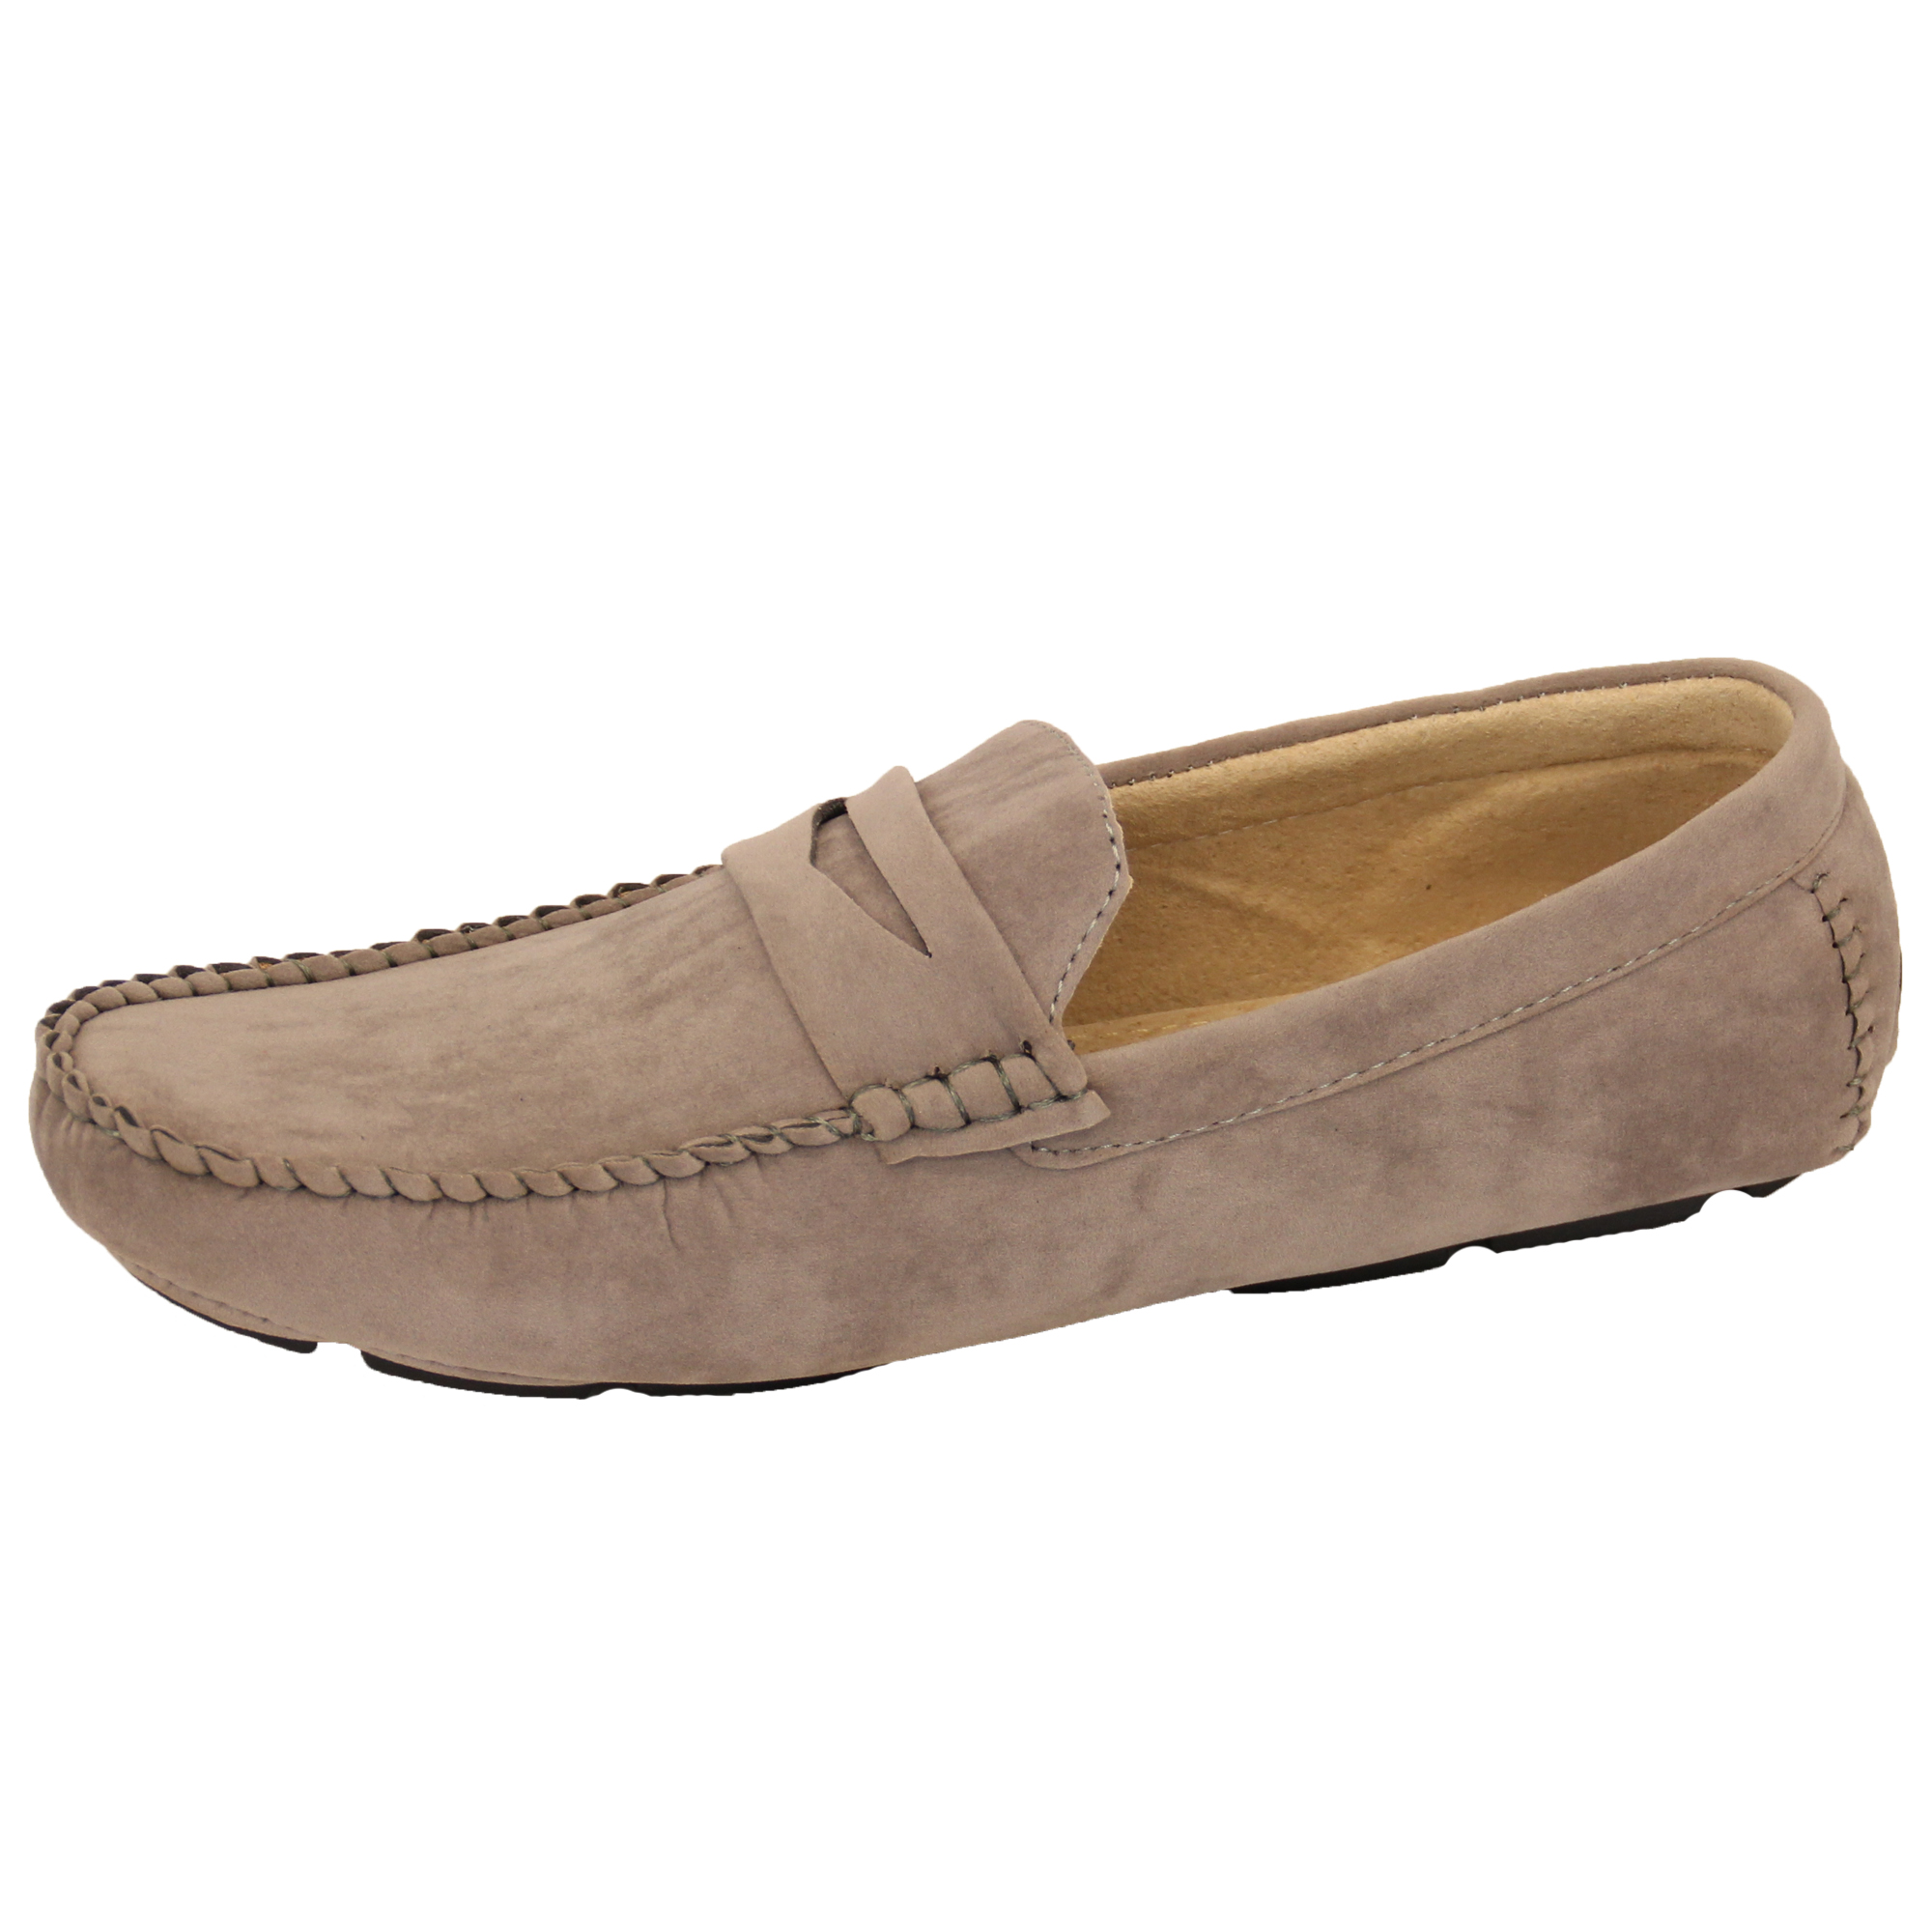 Mens-Moccasins-Suede-Leather-Look-Shoes-Boat-Slip-On-Tassel-Loafers-Smart-Formal thumbnail 14